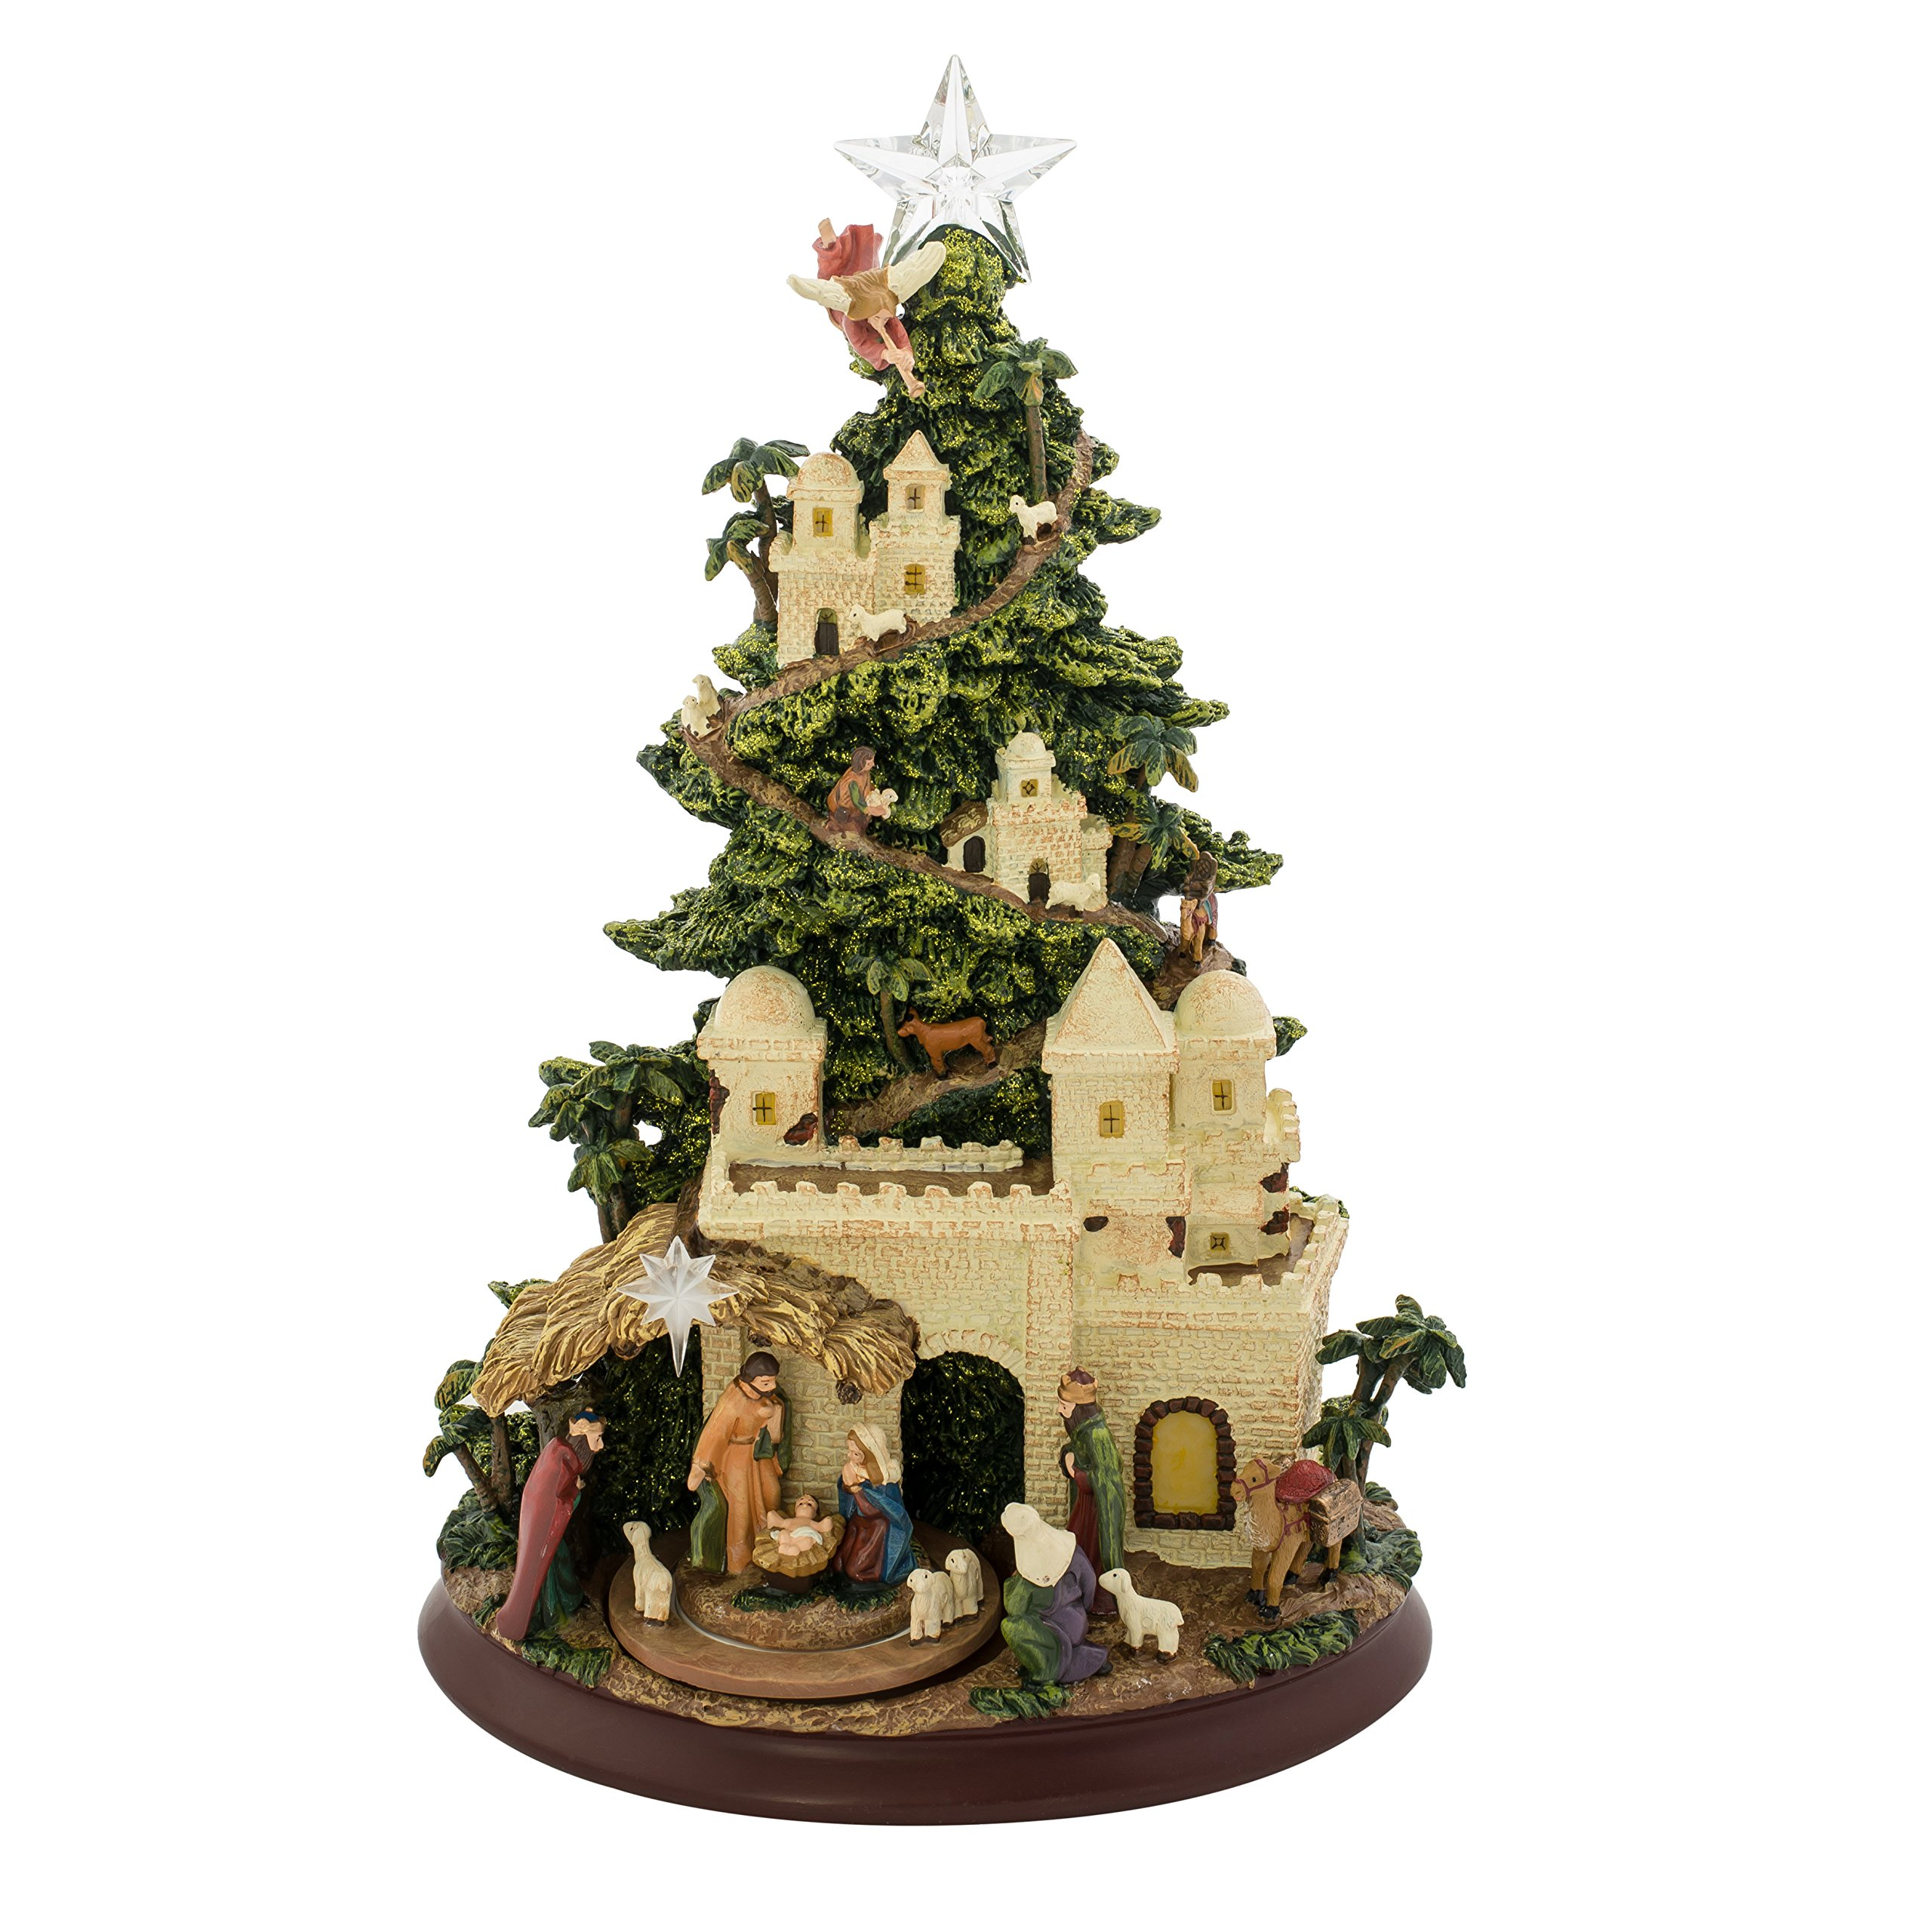 Nativity Scene Glitter Musical Light Up Tree 13 Inch Resin Tabletop Display Plays Silent Night by Roman